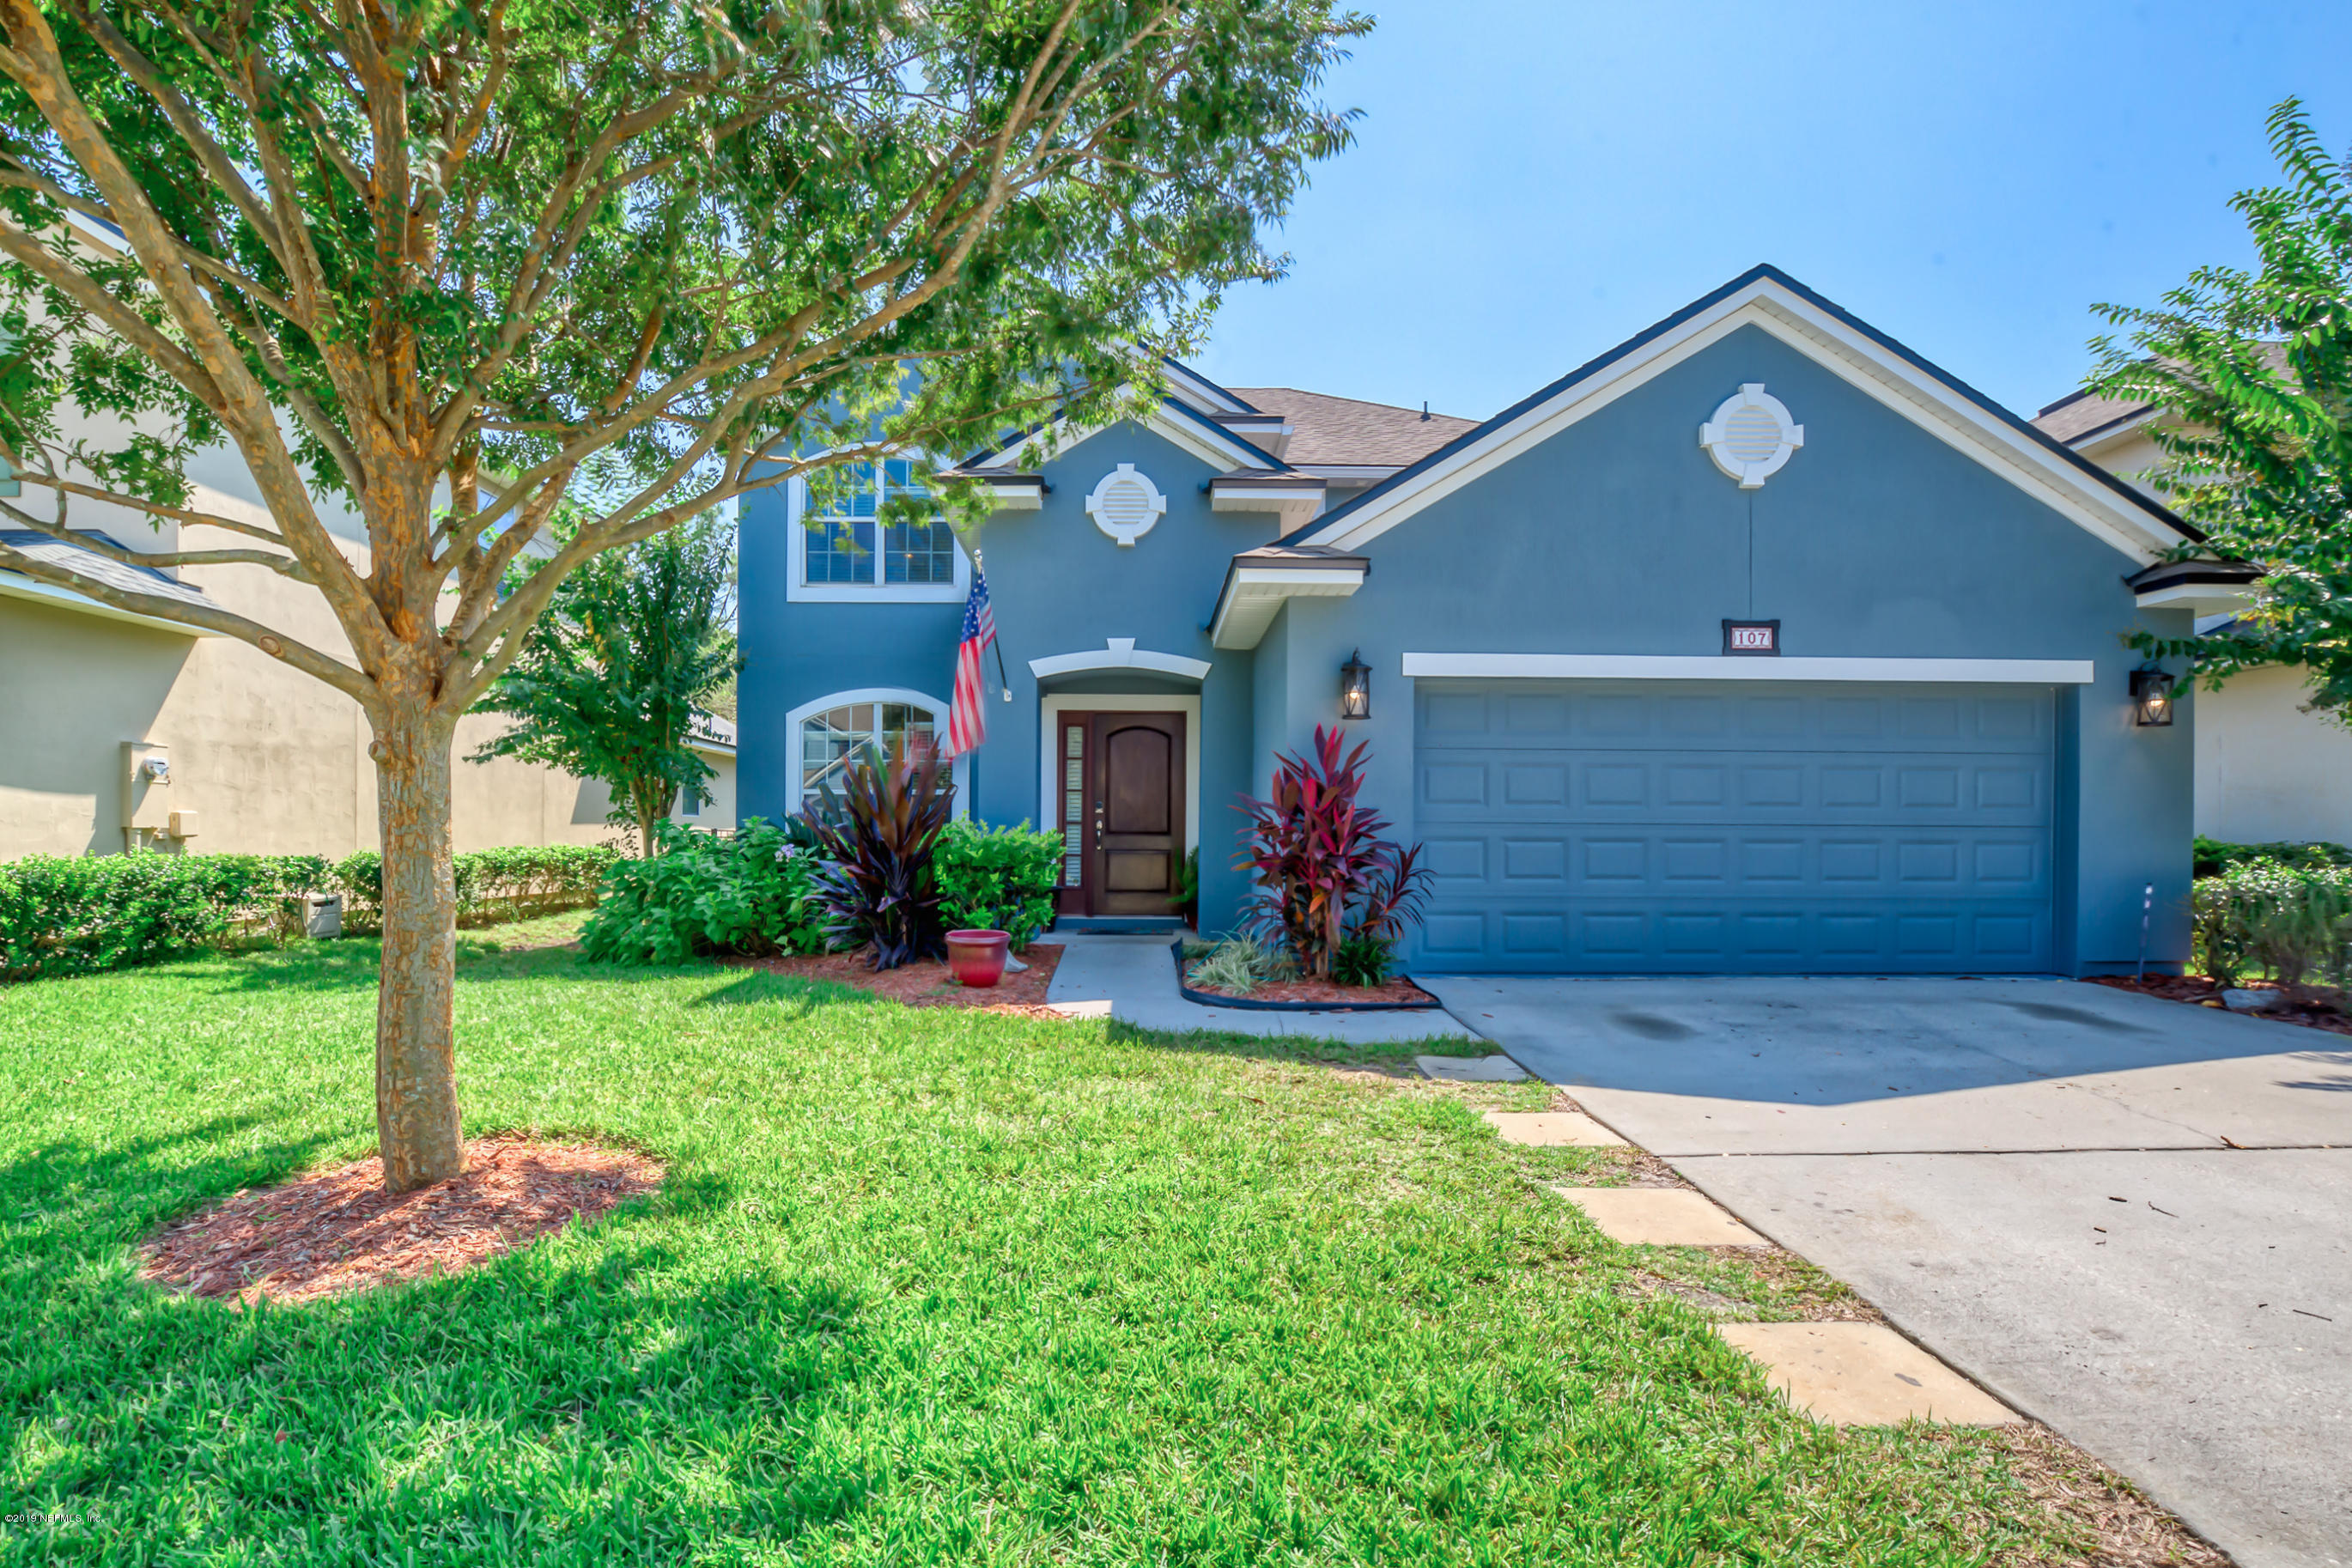 107 CRESTHAVEN, ST JOHNS, FLORIDA 32259, 4 Bedrooms Bedrooms, ,3 BathroomsBathrooms,Residential - single family,For sale,CRESTHAVEN,1017646